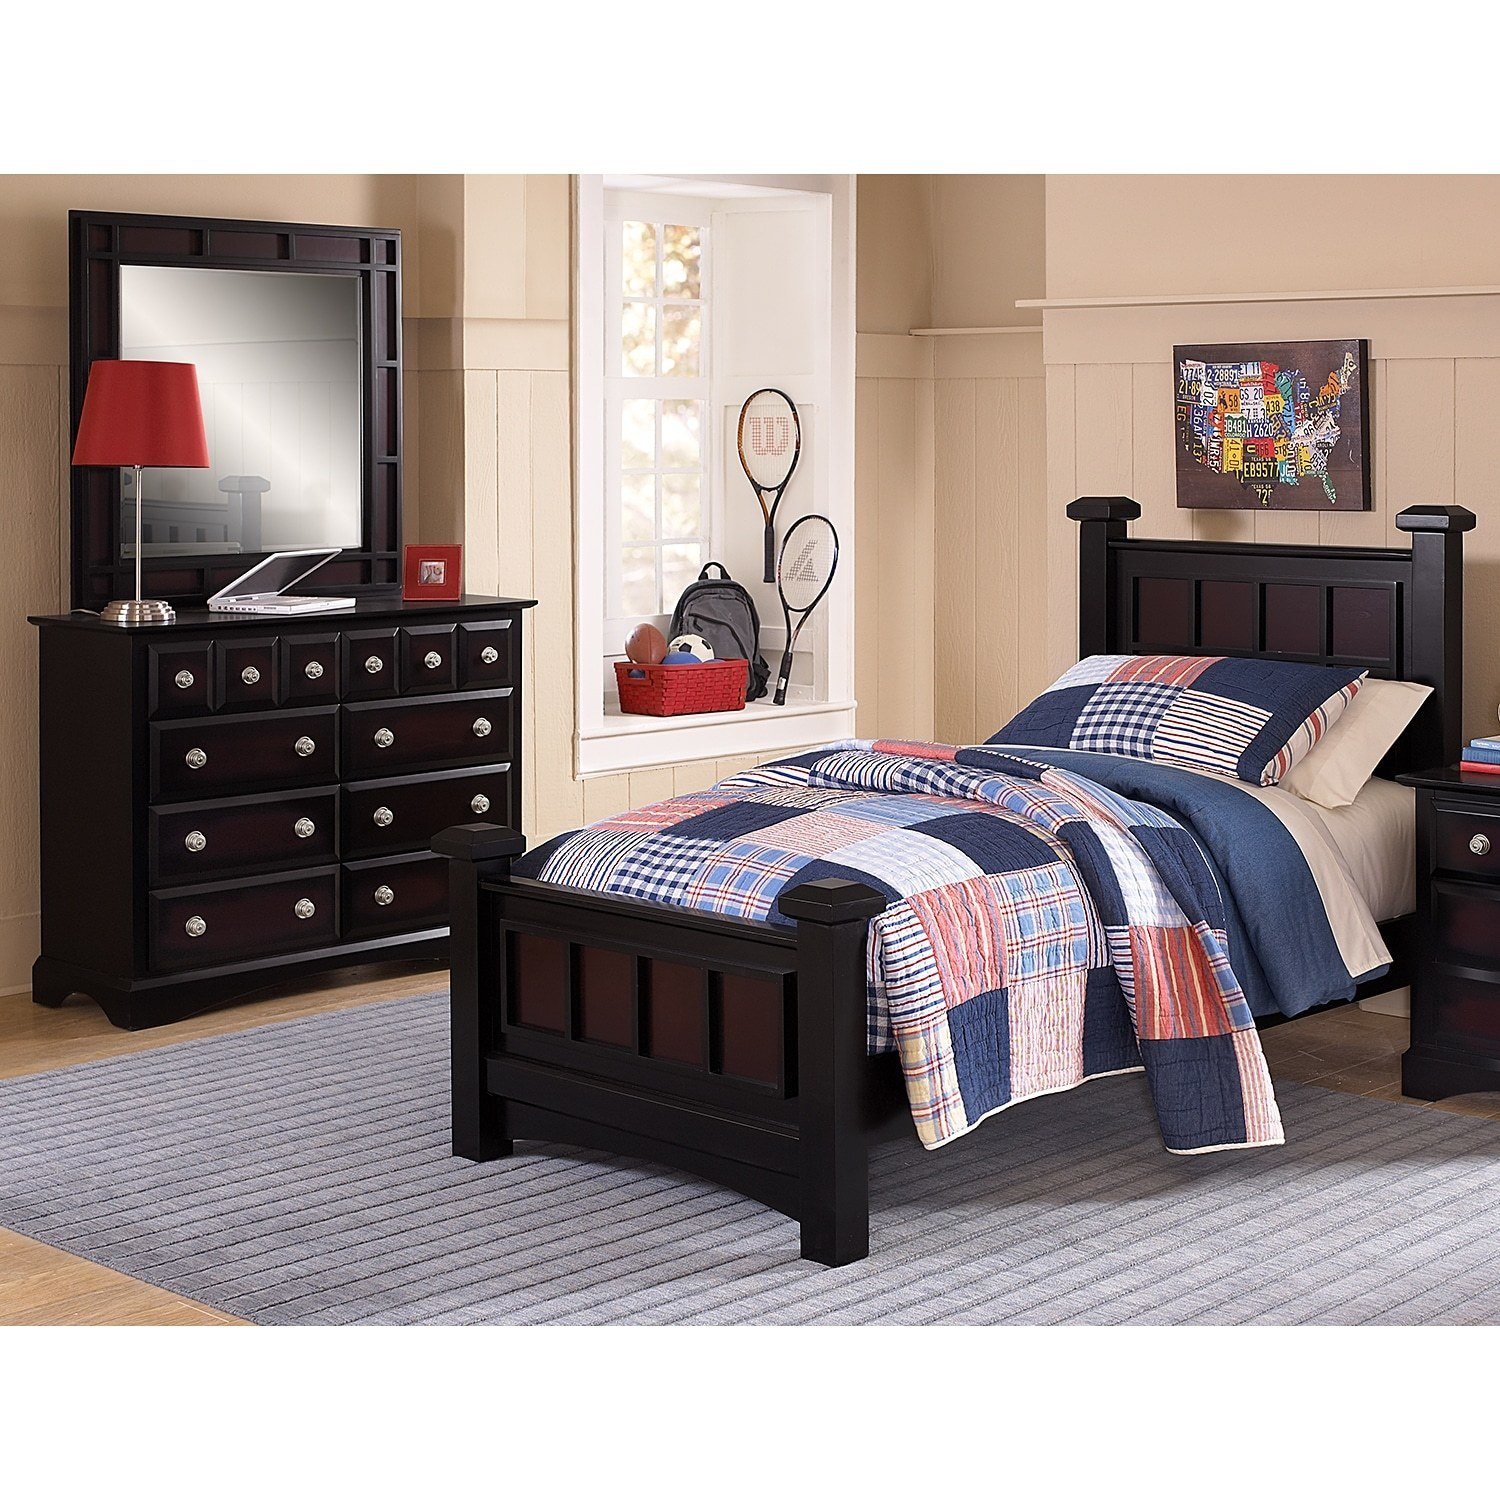 Best Winchester 5 Piece Full Bedroom Set Black And Burnished With Pictures